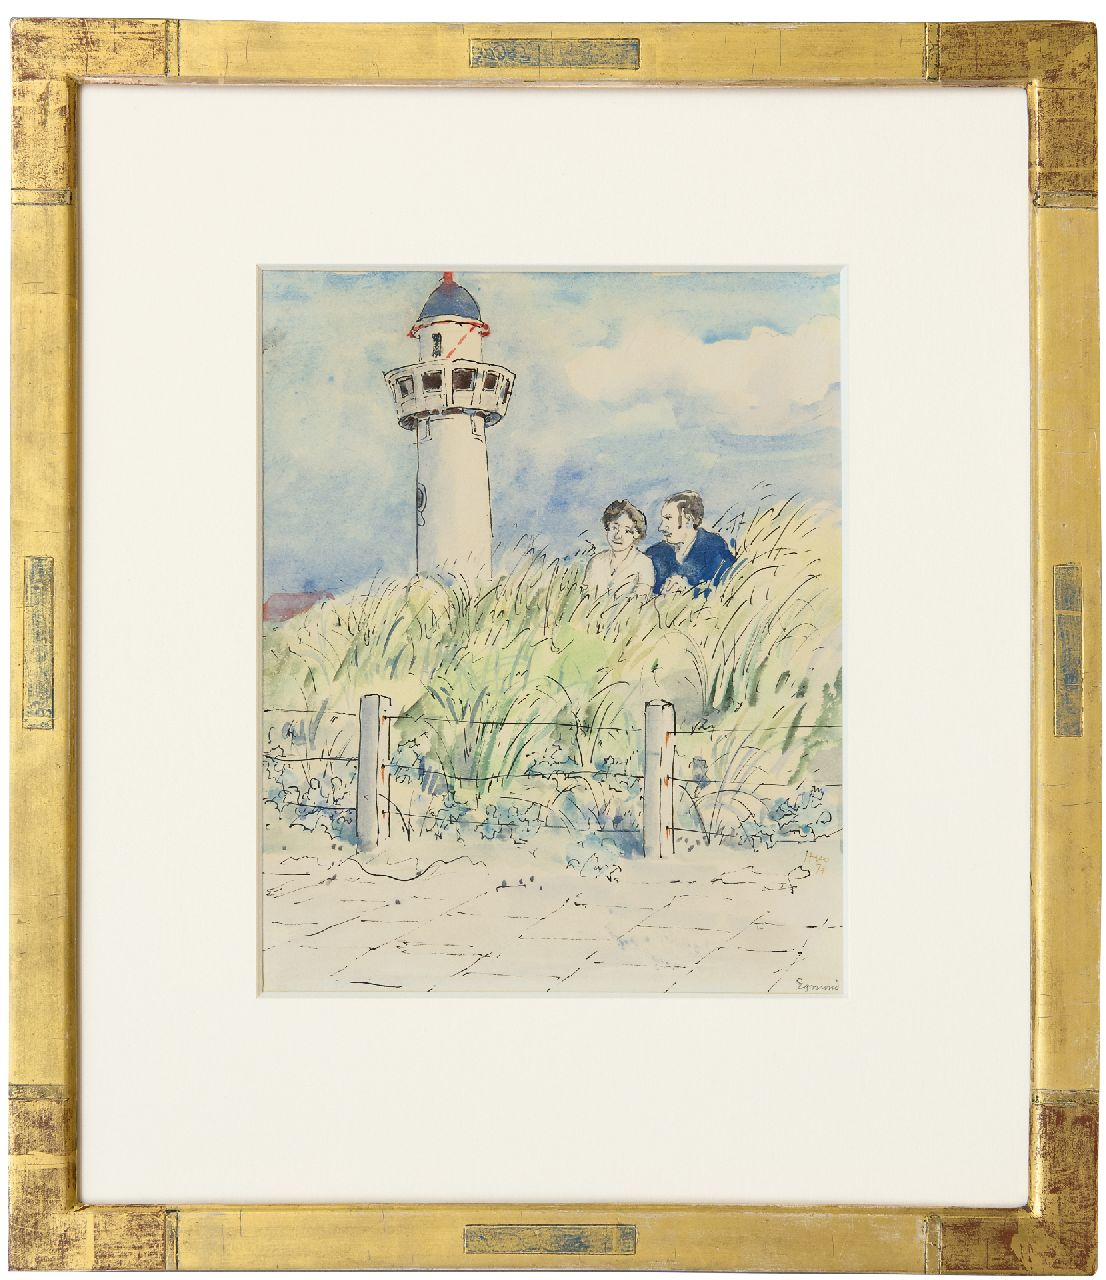 Kamerlingh Onnes H.H.  | 'Harm' Henrick Kamerlingh Onnes, A young couple in the dunes, Egmond aan Zee, pen, ink and watercolour on paper 25.7 x 21.0 cm, signed l.r. and dated '74